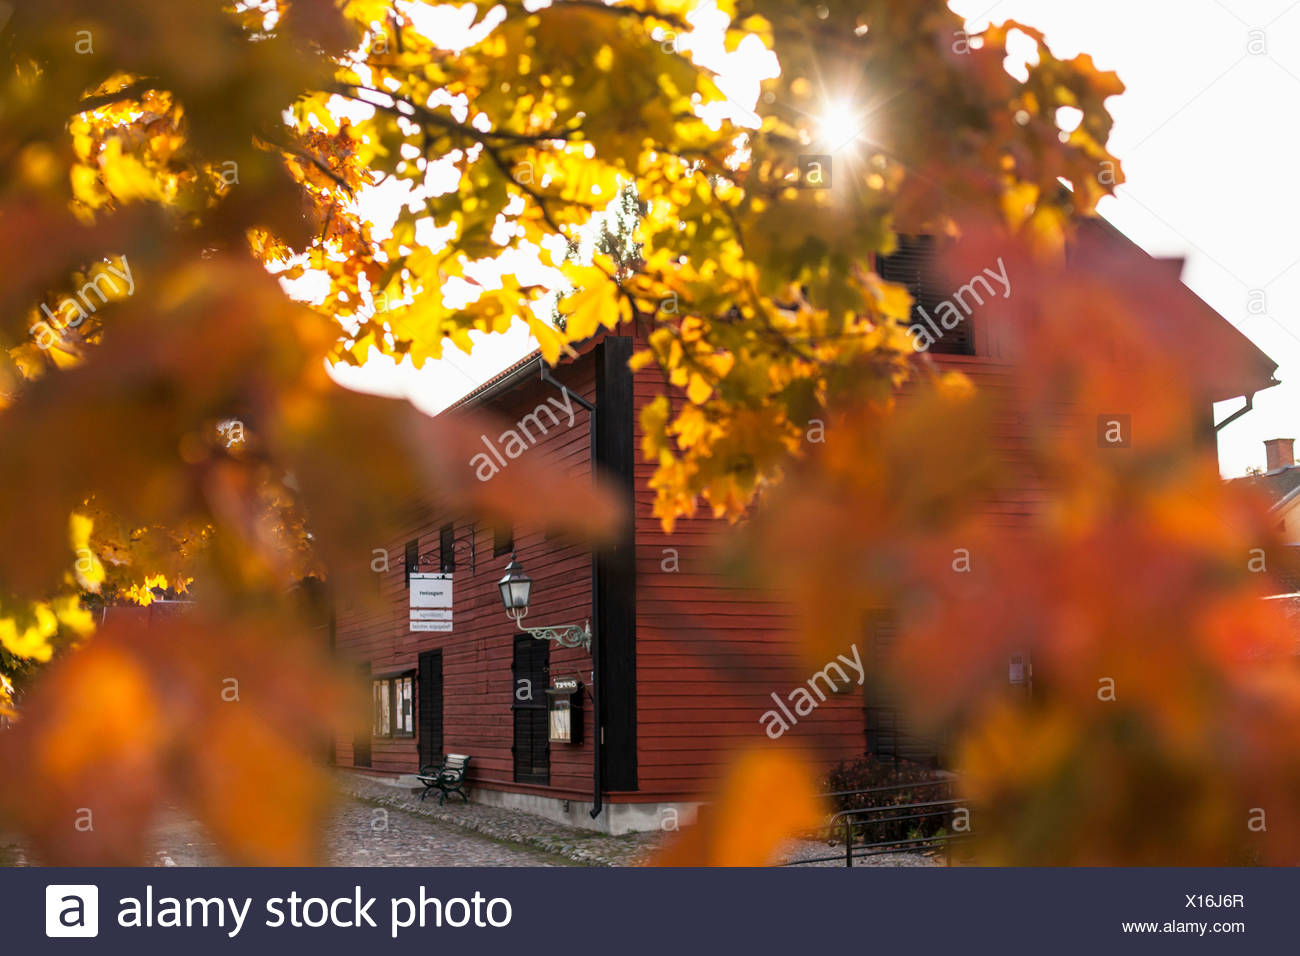 Autumn leaves with house in background - Stock Image